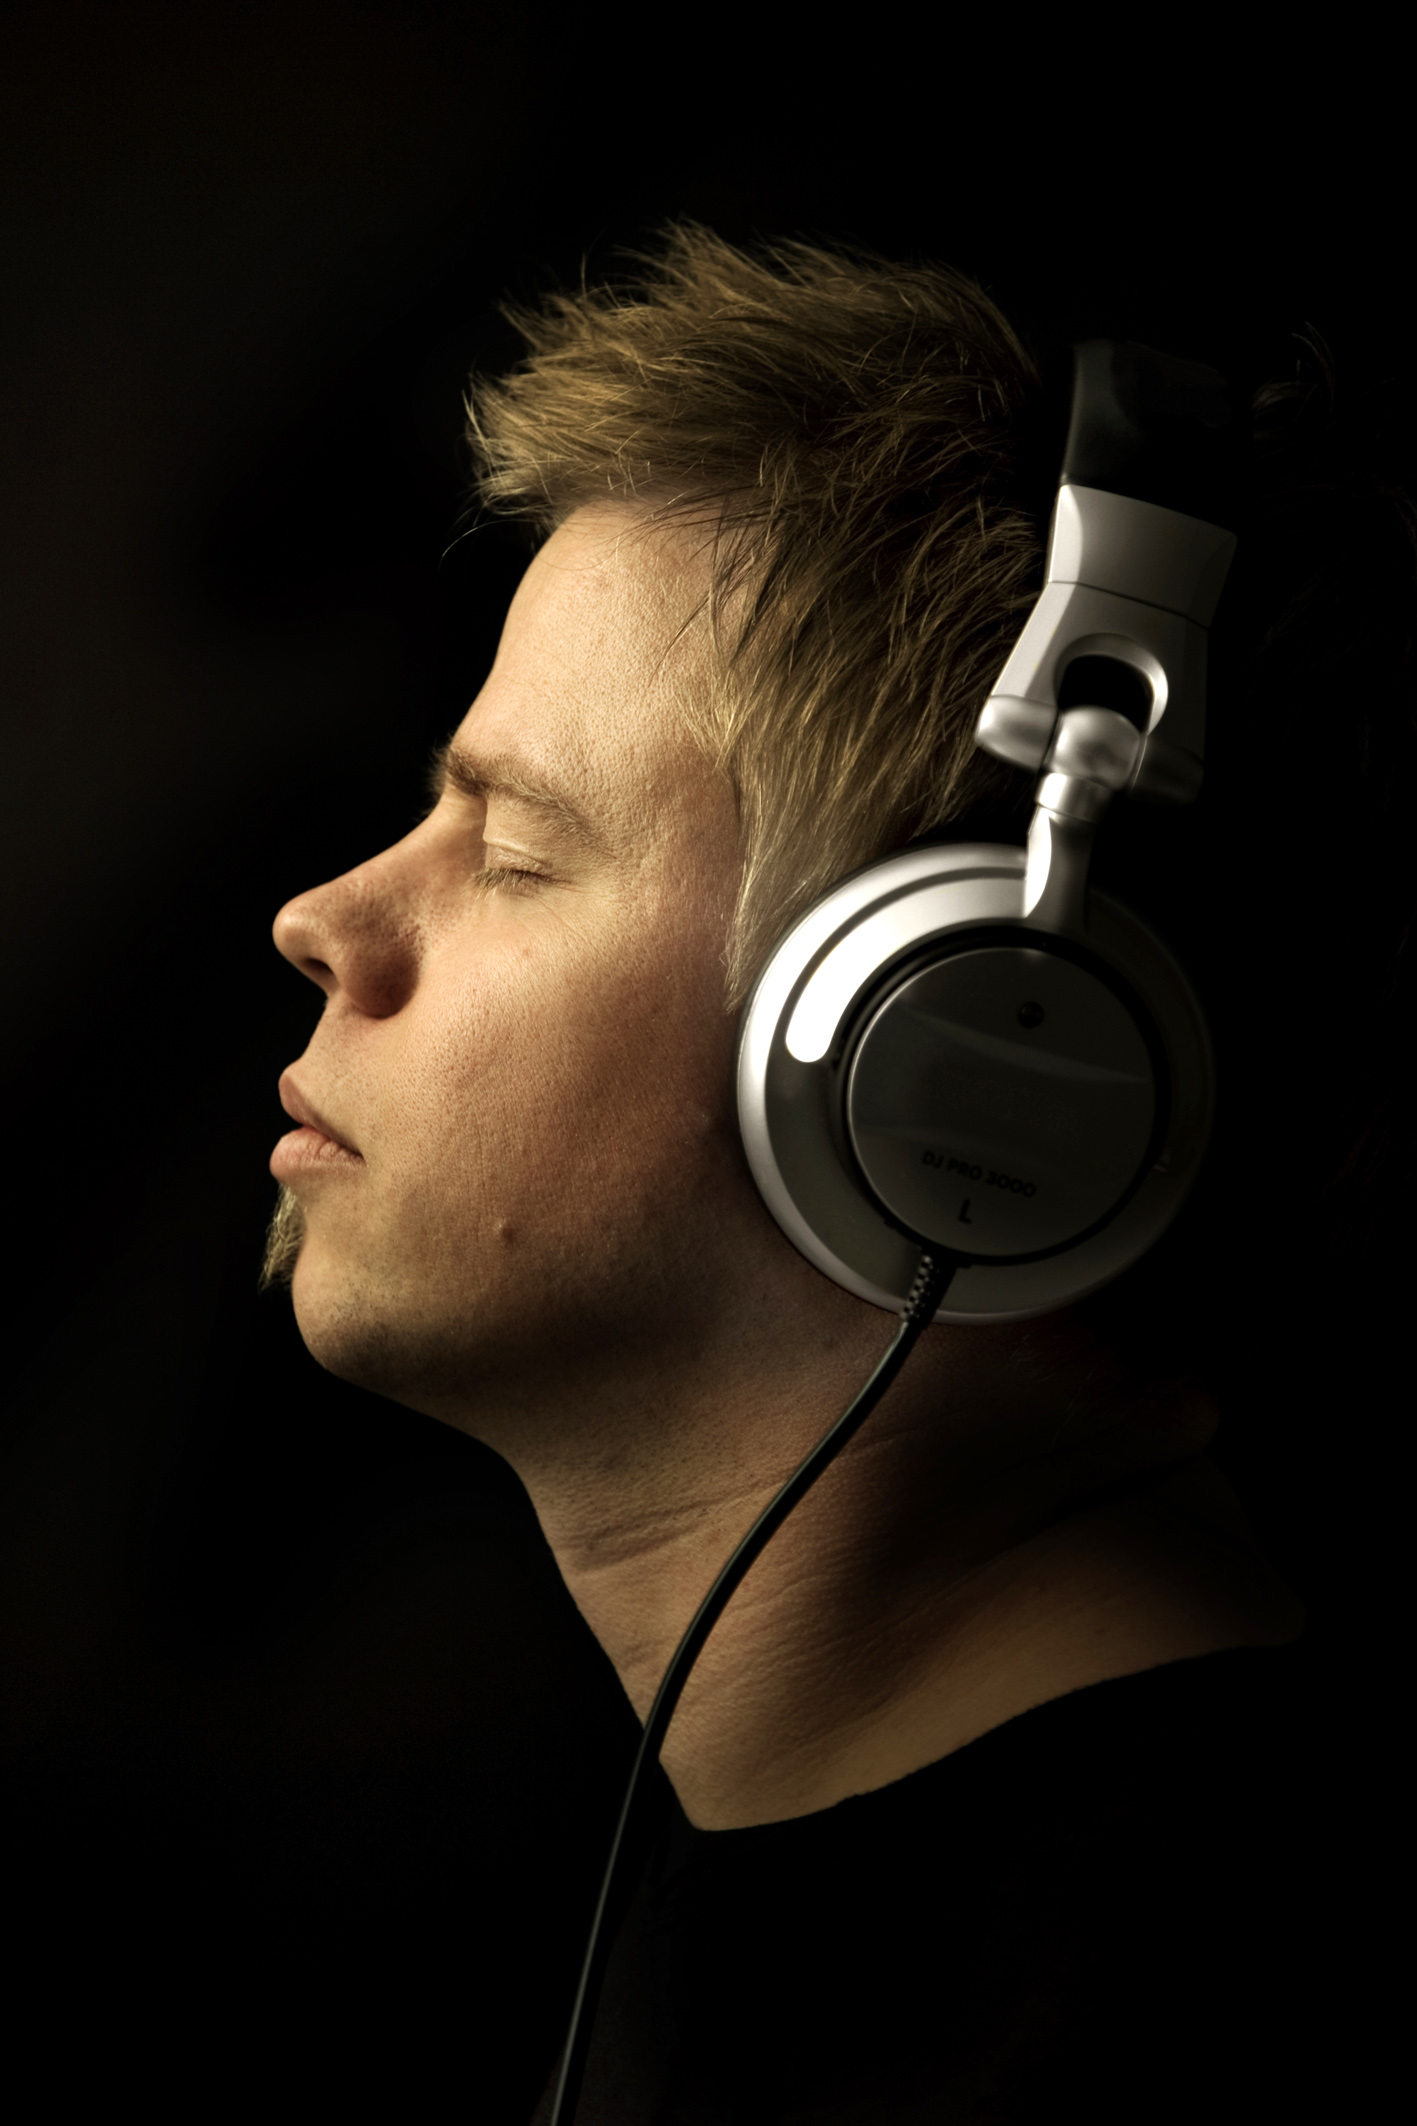 Ferry Corsten - Corstens Countdown 492 - 01-Dec-2016